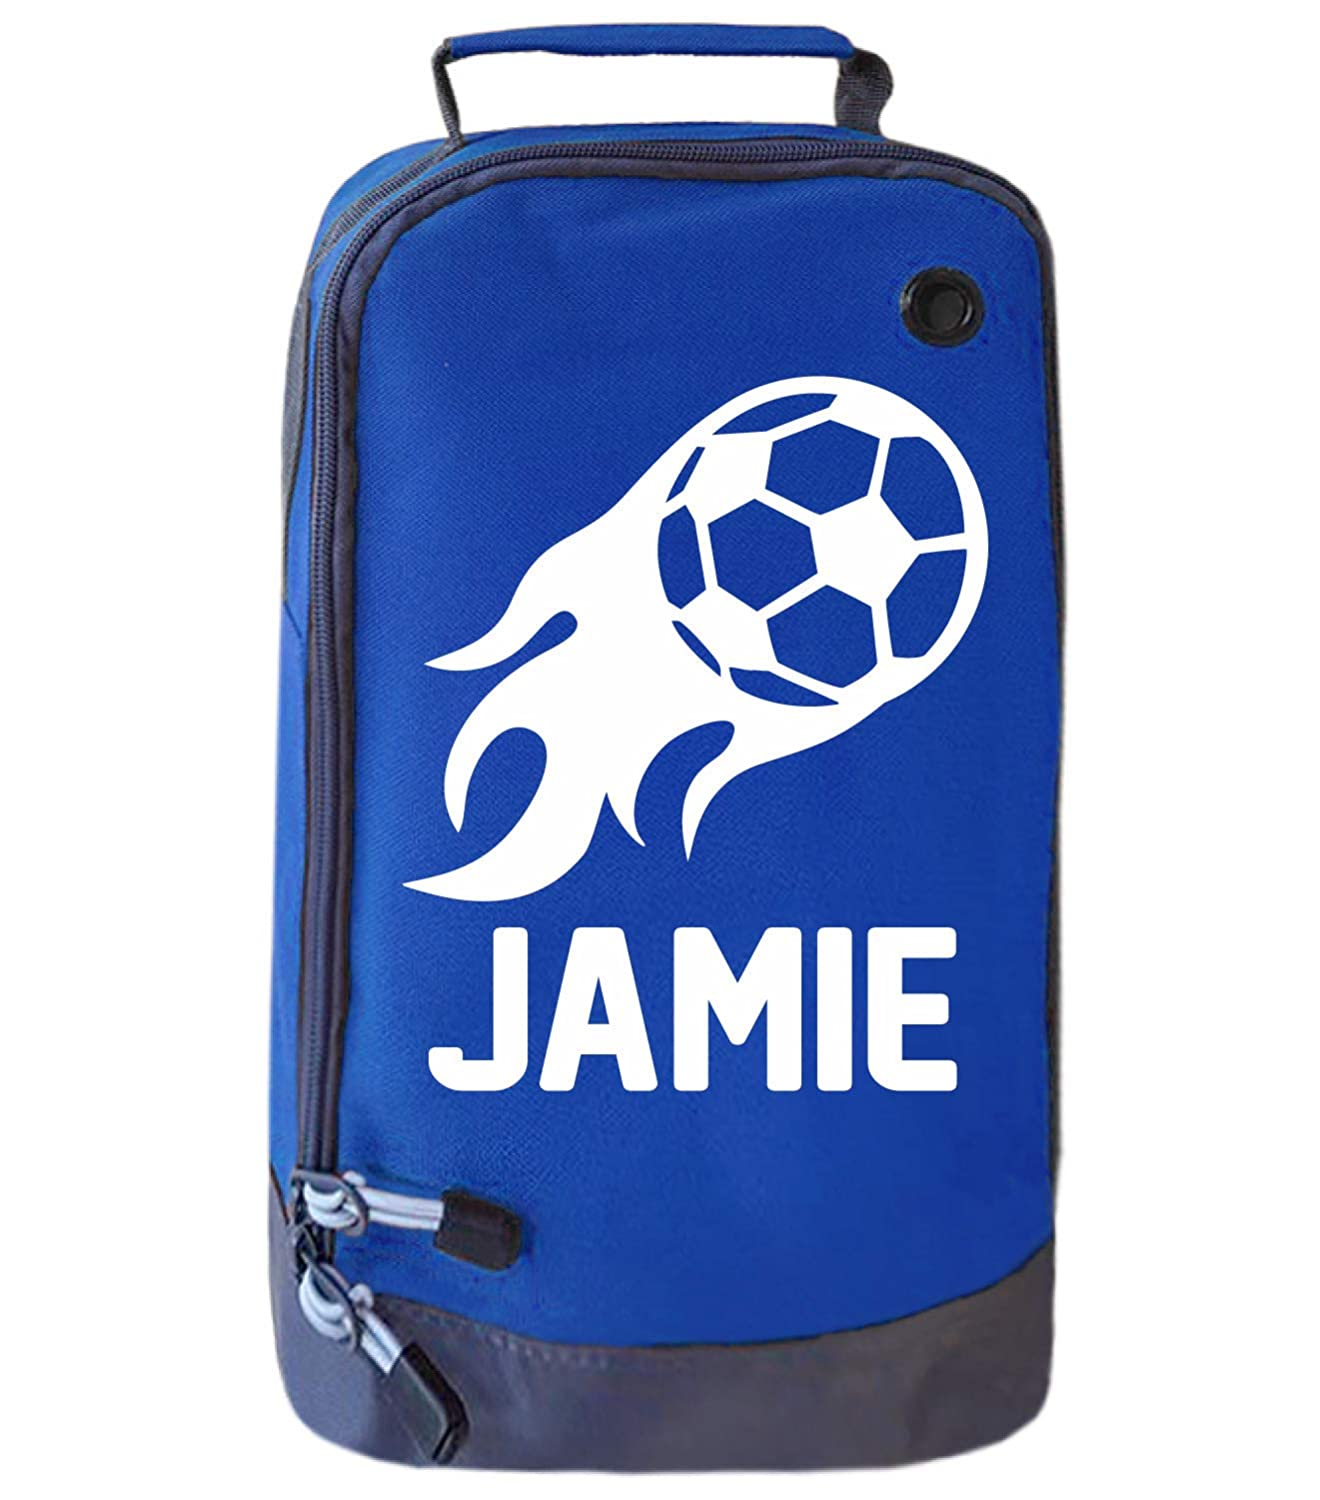 Absolutely Top Childrens Personalised Flame Football Boot Bag Boys Sports PE Gym Kit